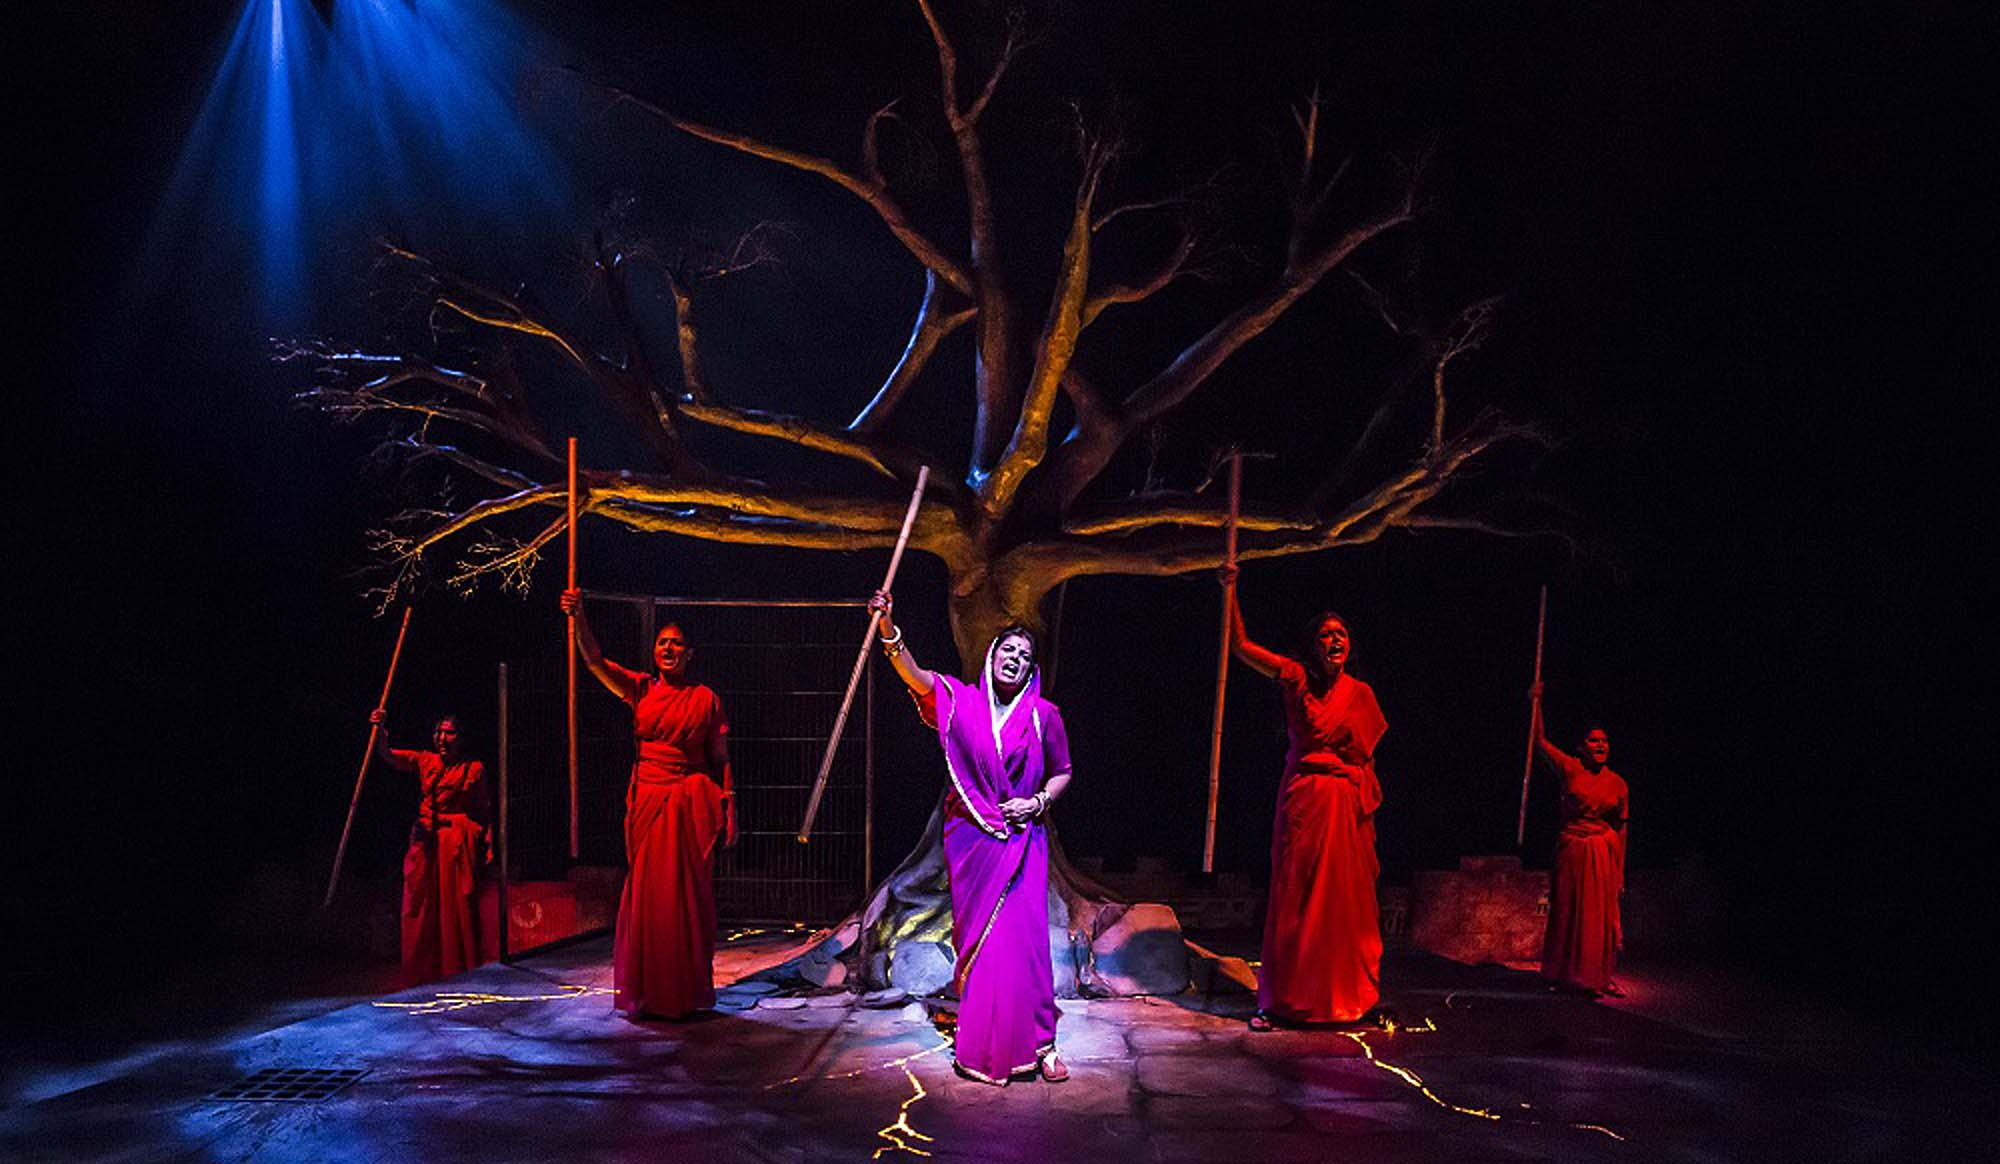 A scene from the in house production Pink Sari Revolution - Curve, Pamela Raith